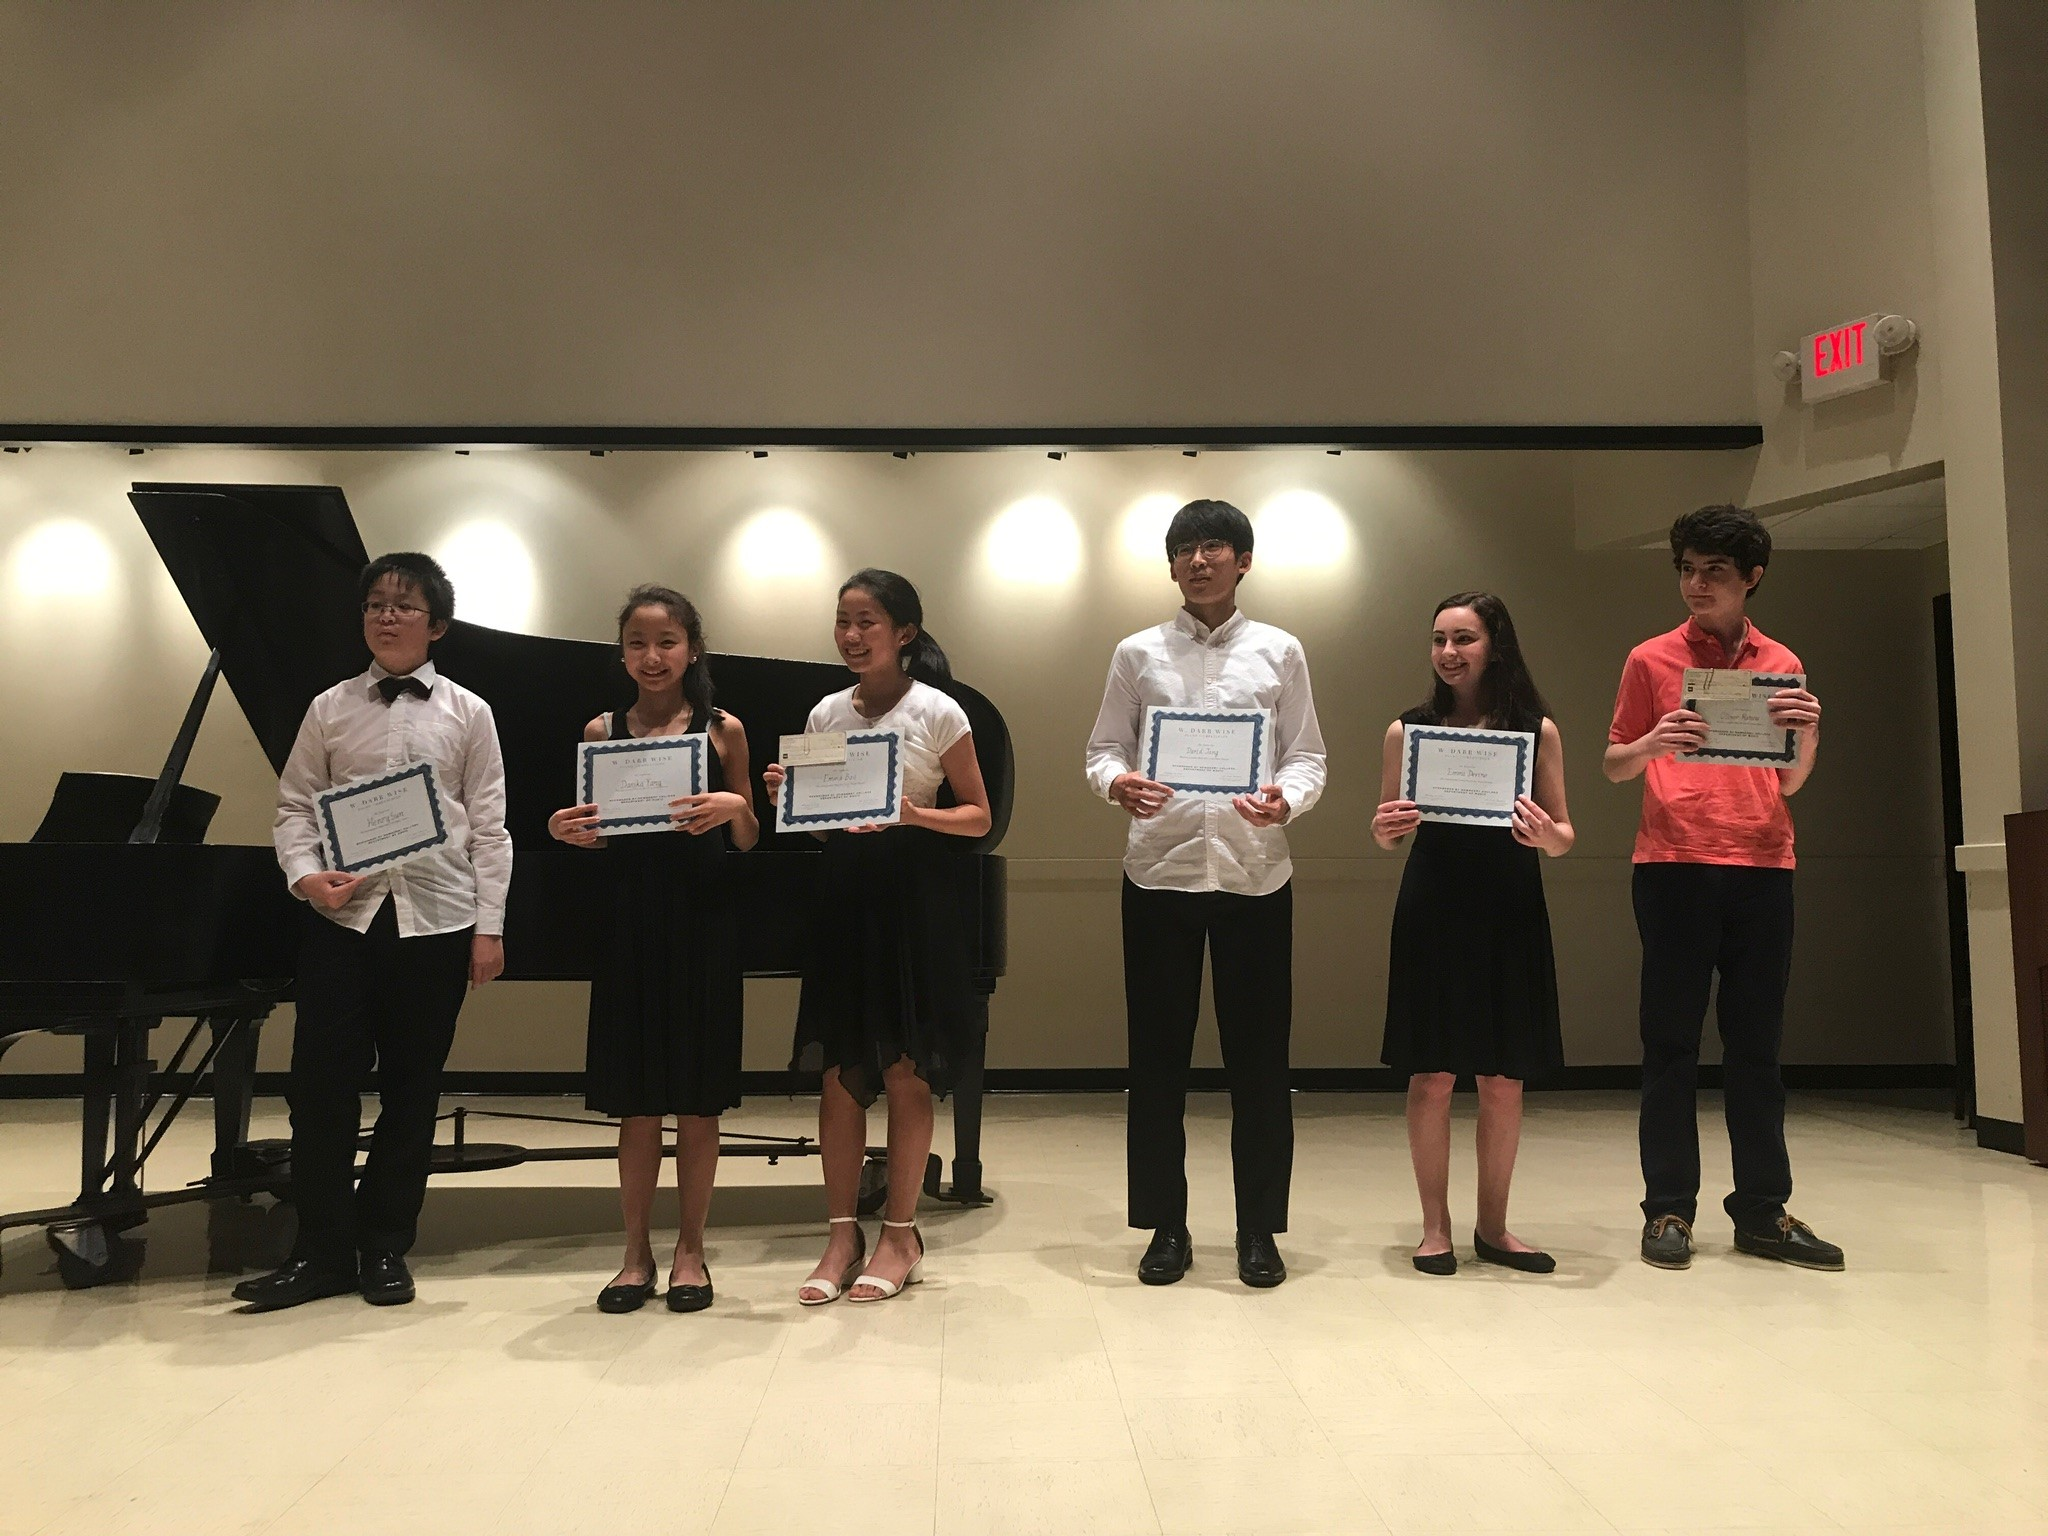 W. Darr Wise Piano Competition